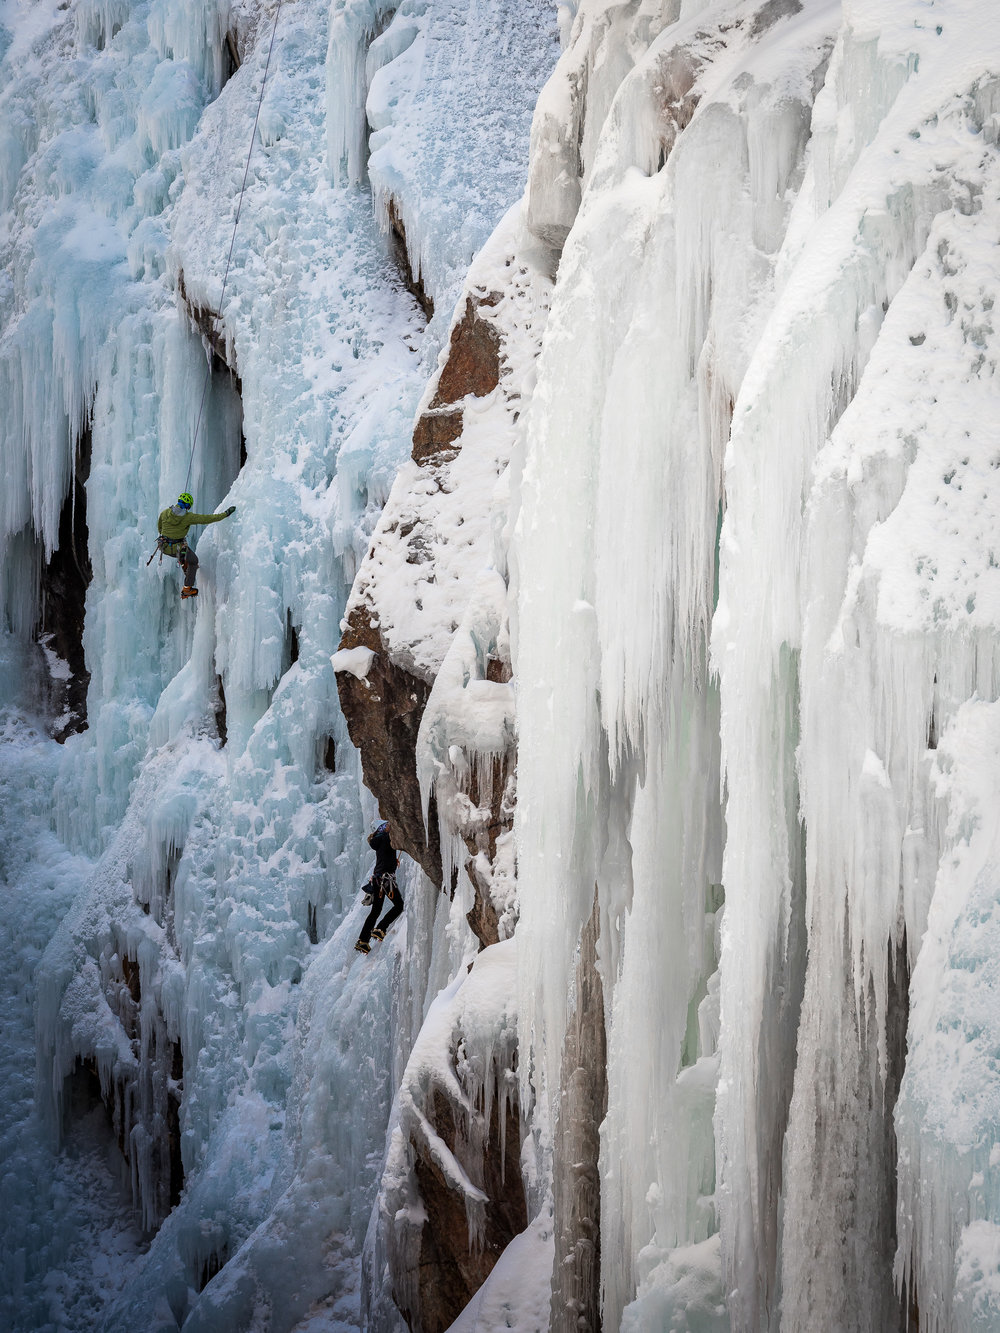 Massive icicles and Climber Green on the left